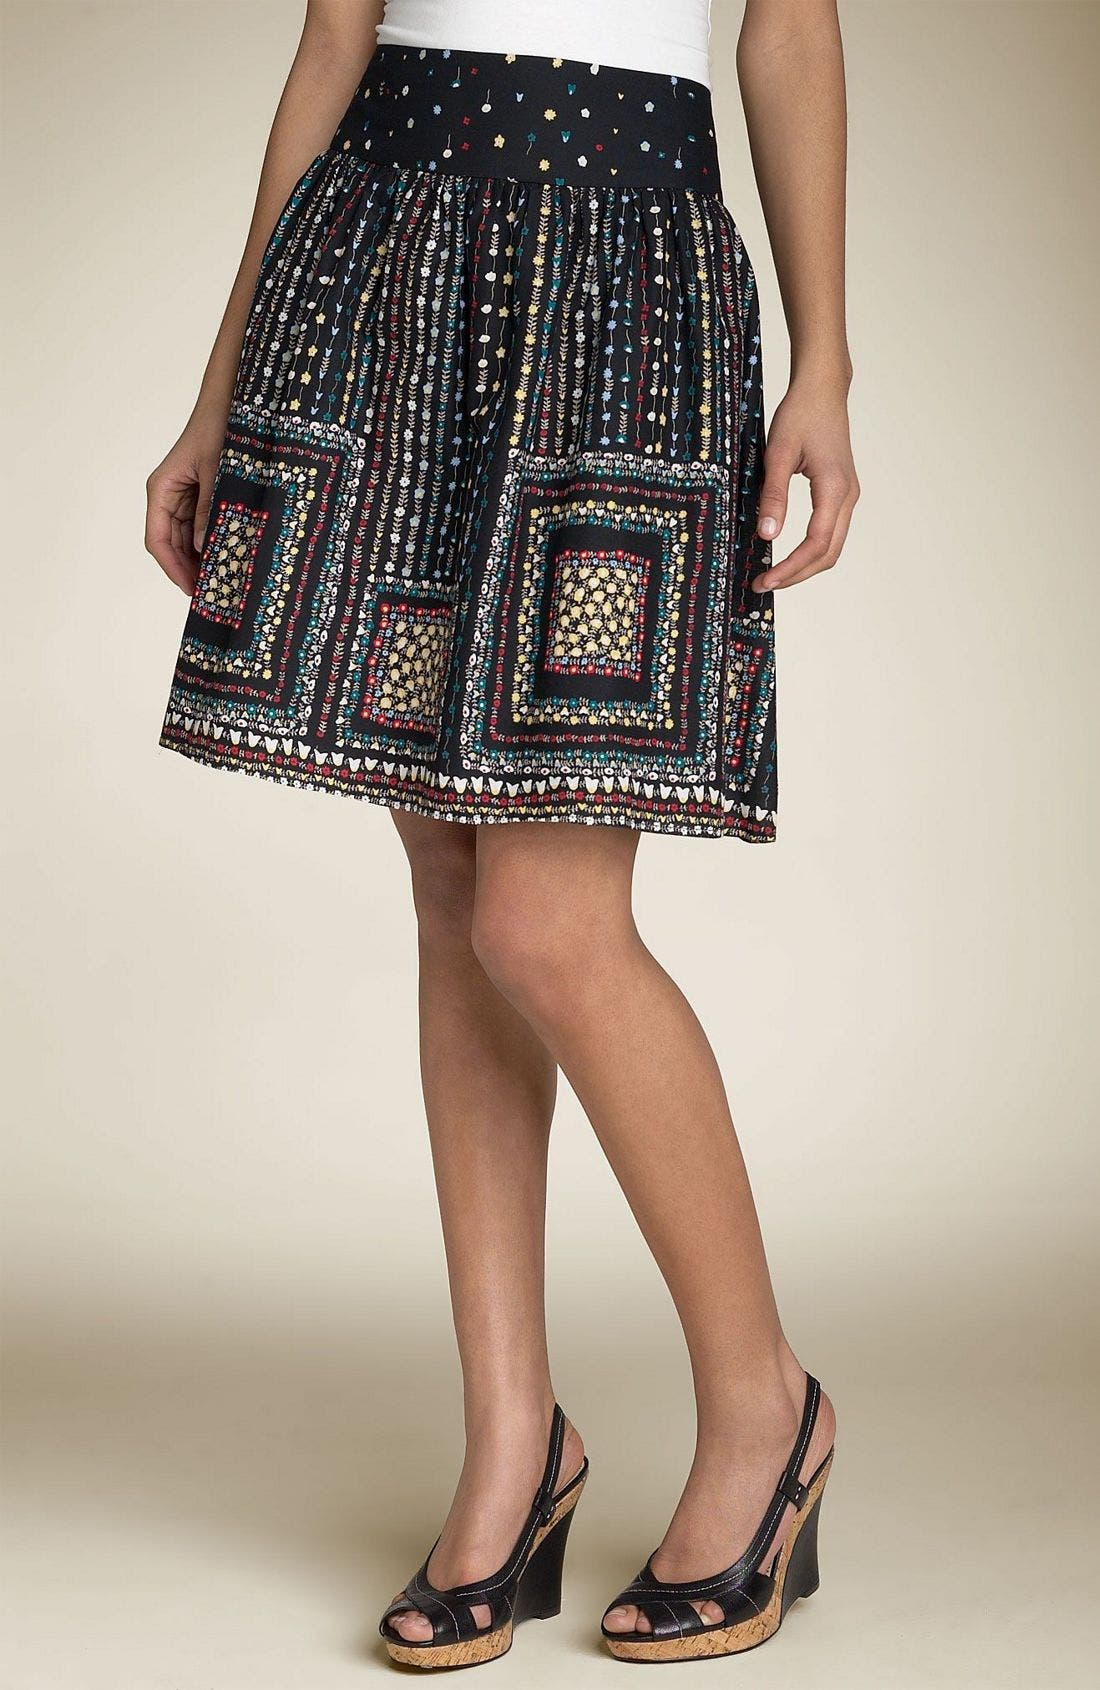 MIMI CHICA Printed Skirt, Main, color, 002